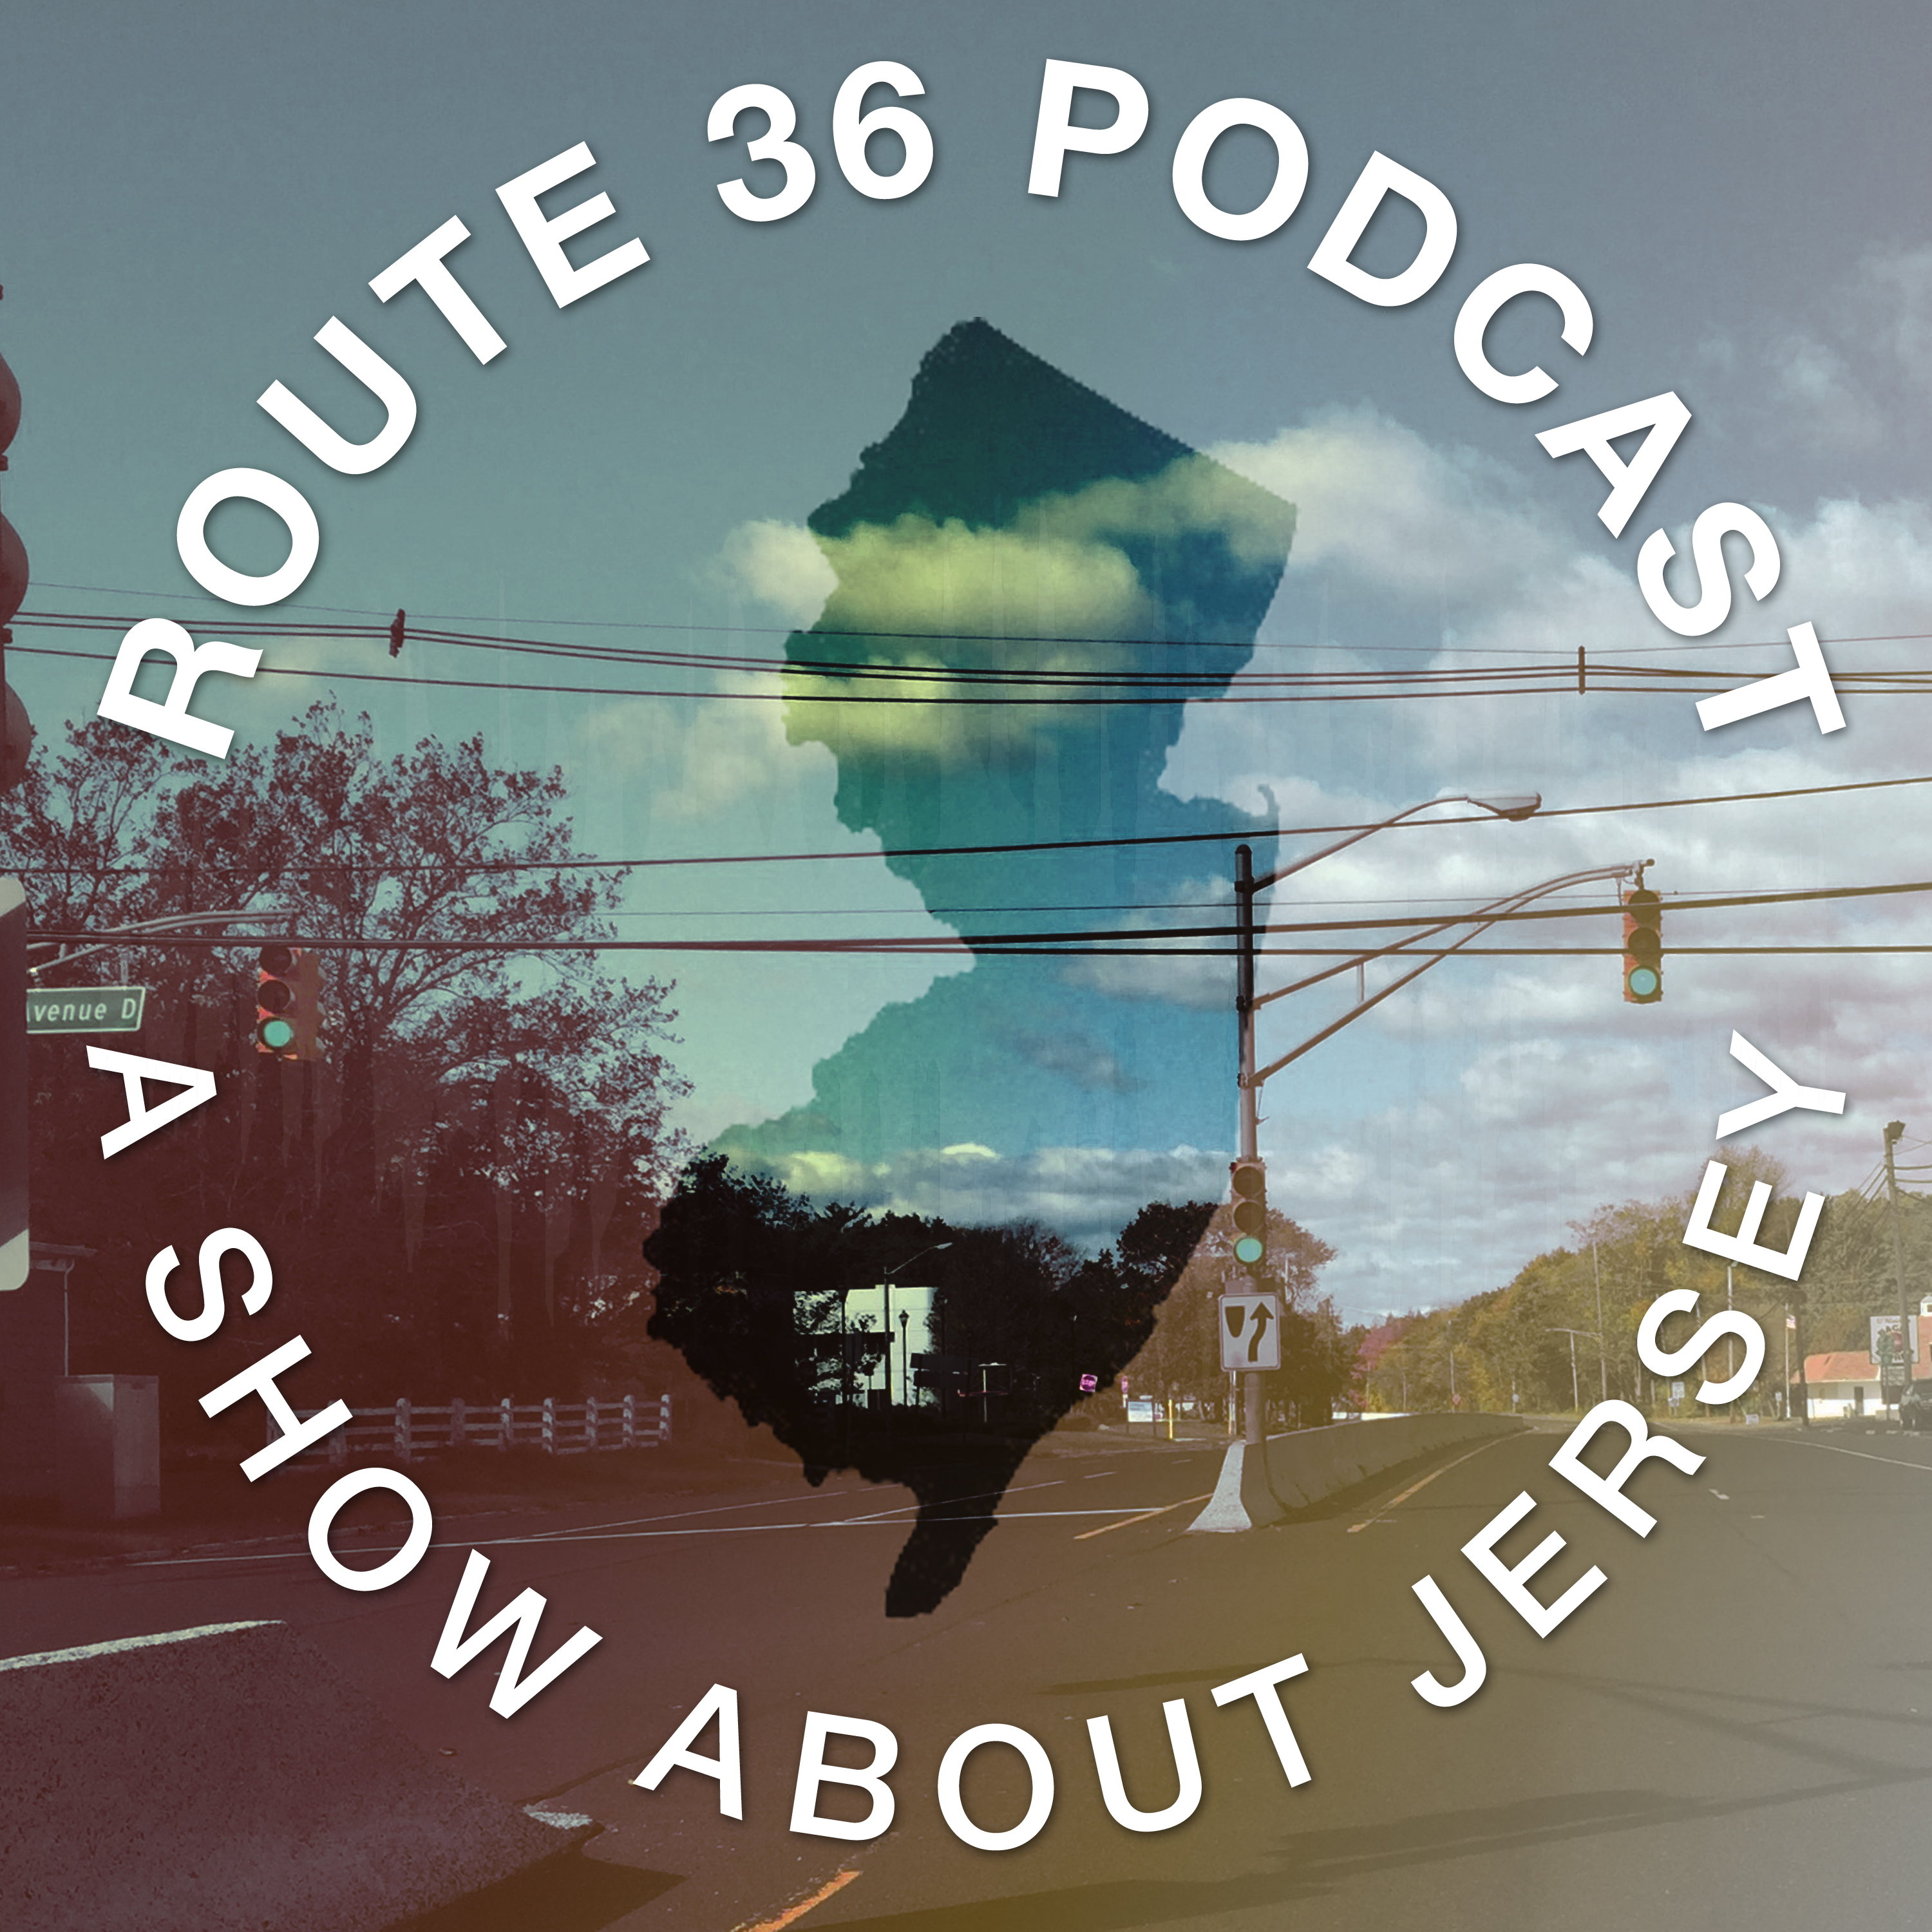 Route 36 Podcast